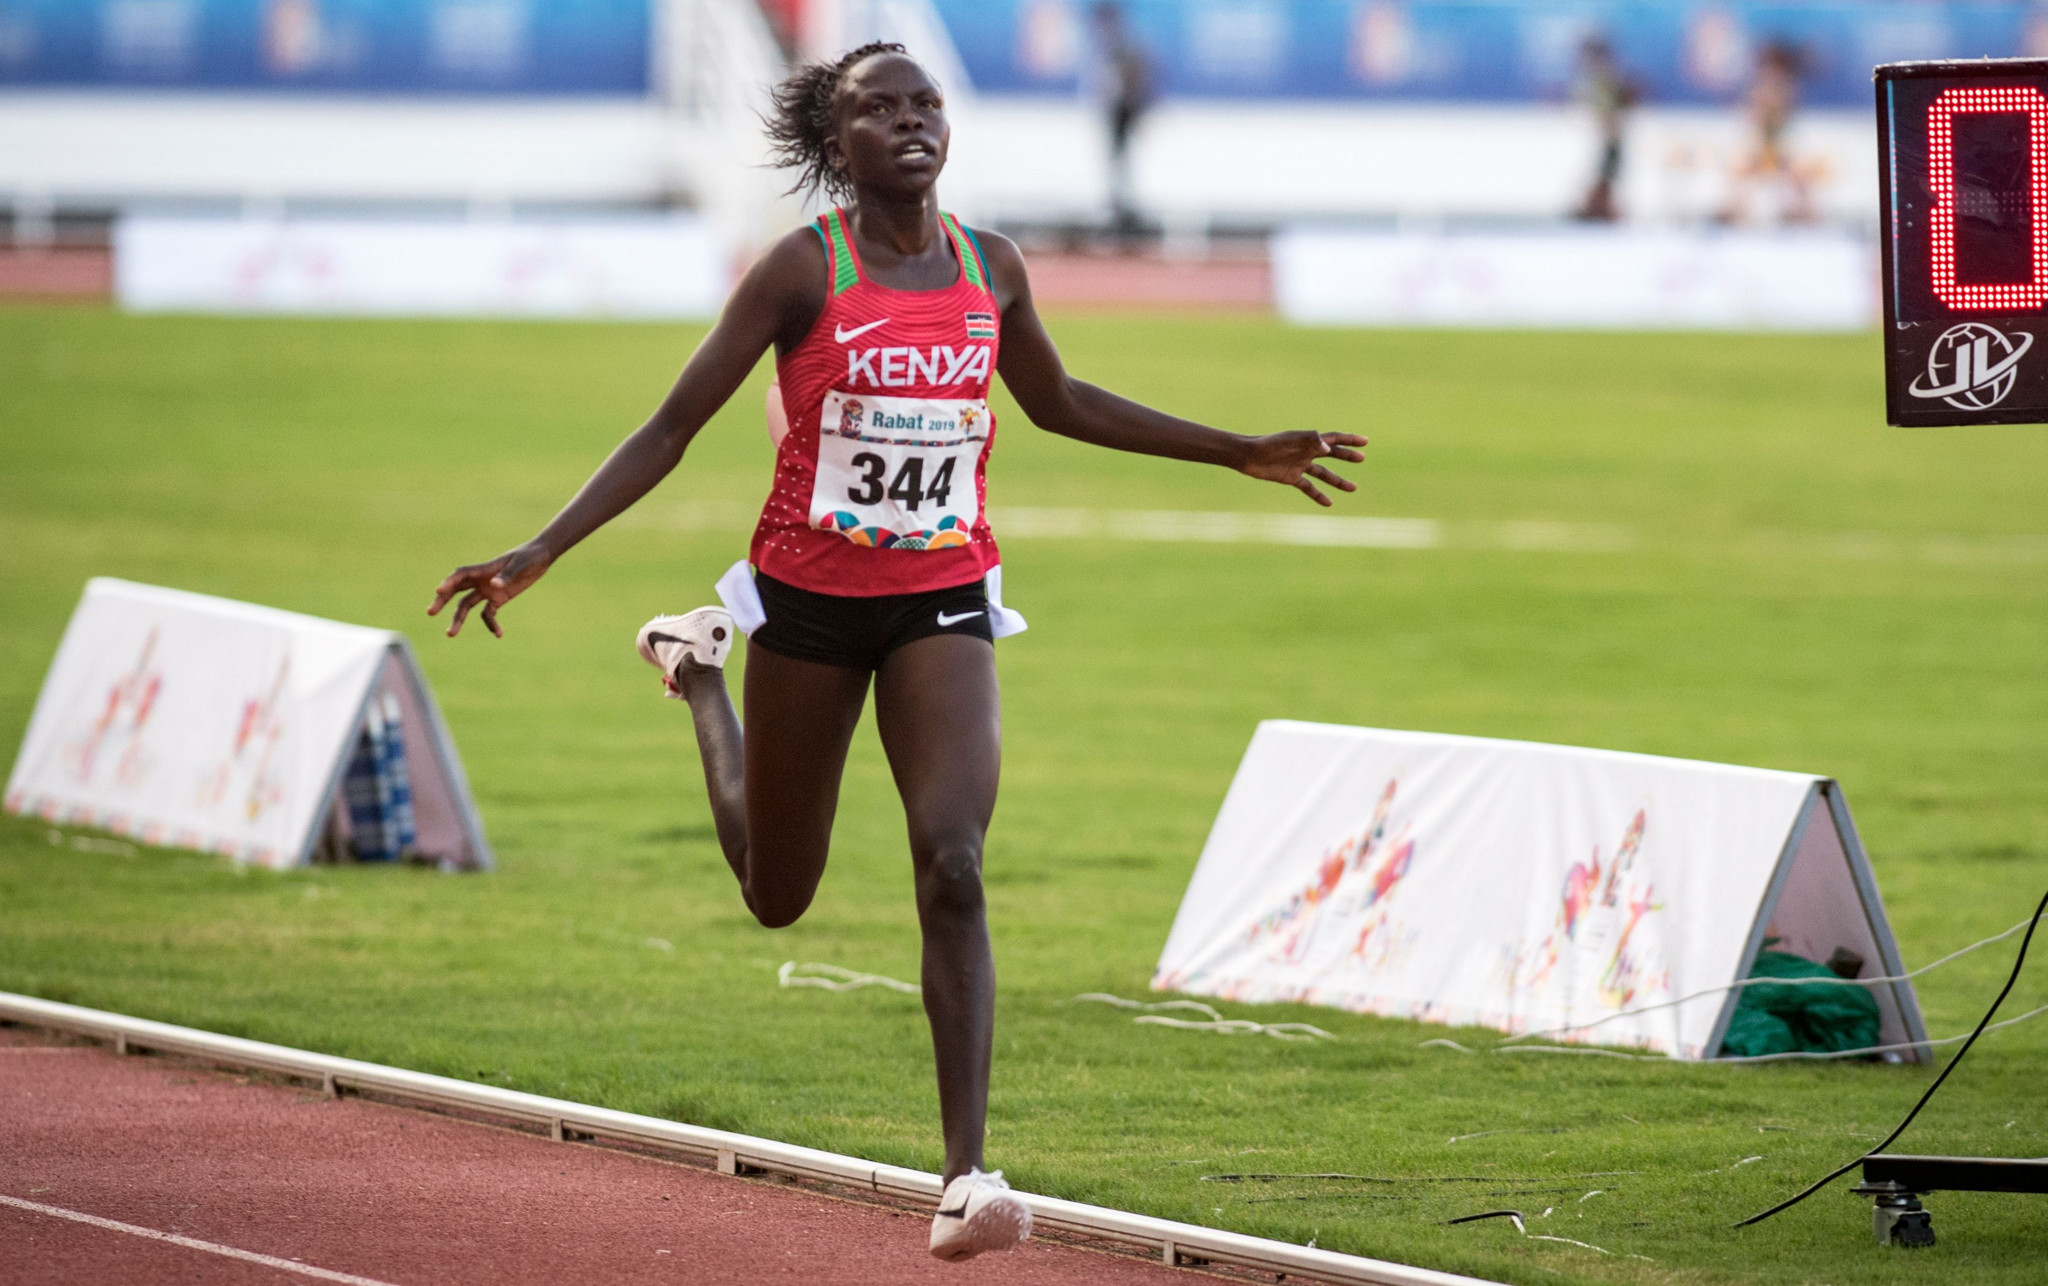 Failure to reach TV deal sees Kenya miss out on live African Games coverage